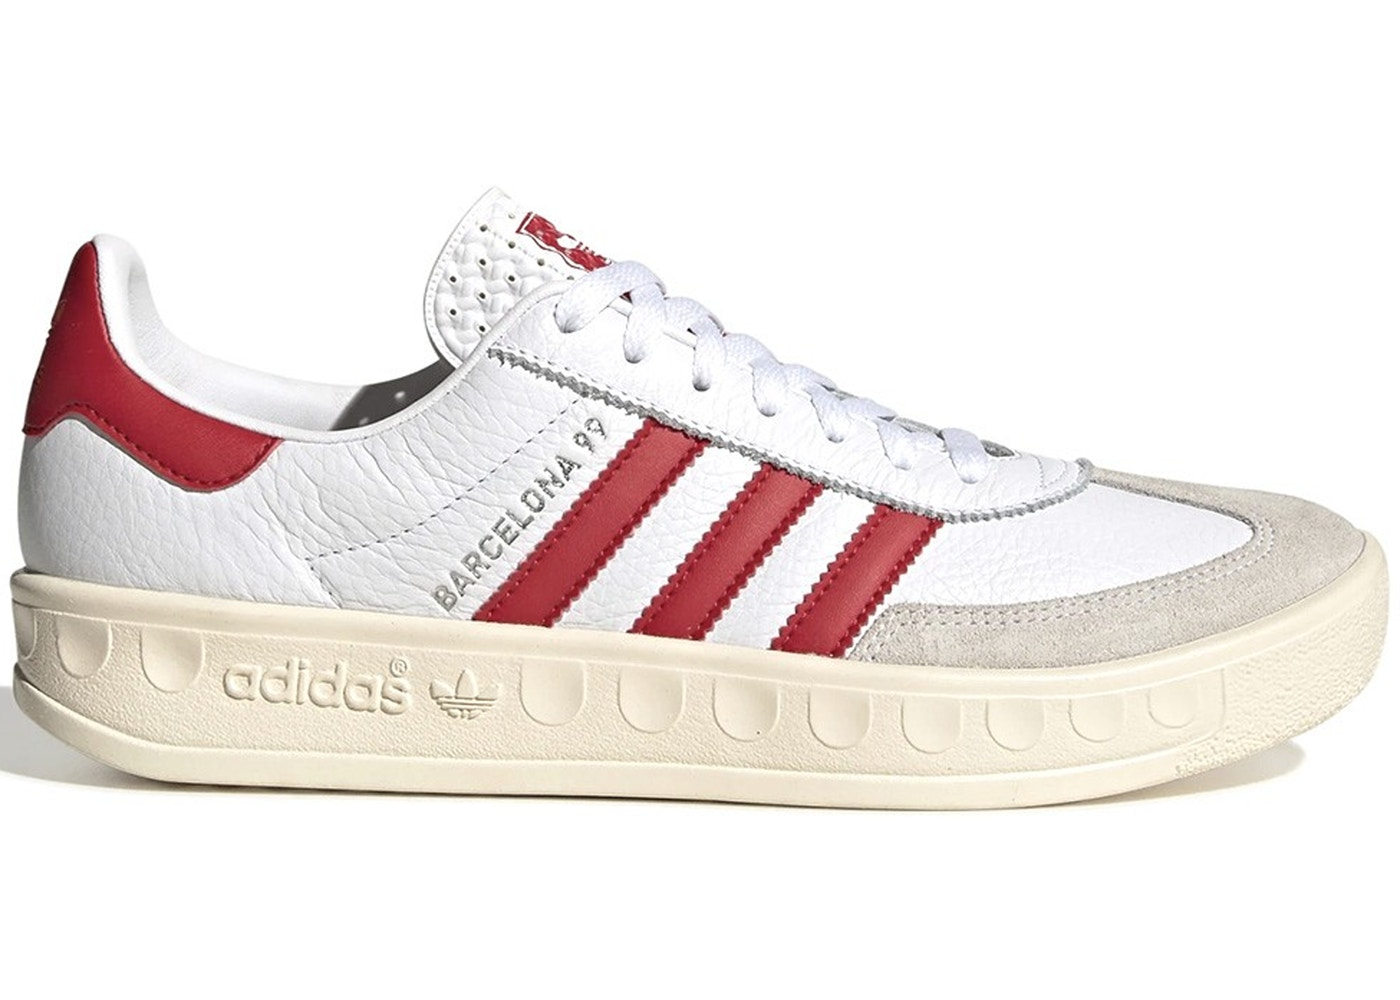 アディダス ADIDAS スニーカー 【 BARCELONA 99 MANCHESTER UNITED WHITE RED 】 メンズ